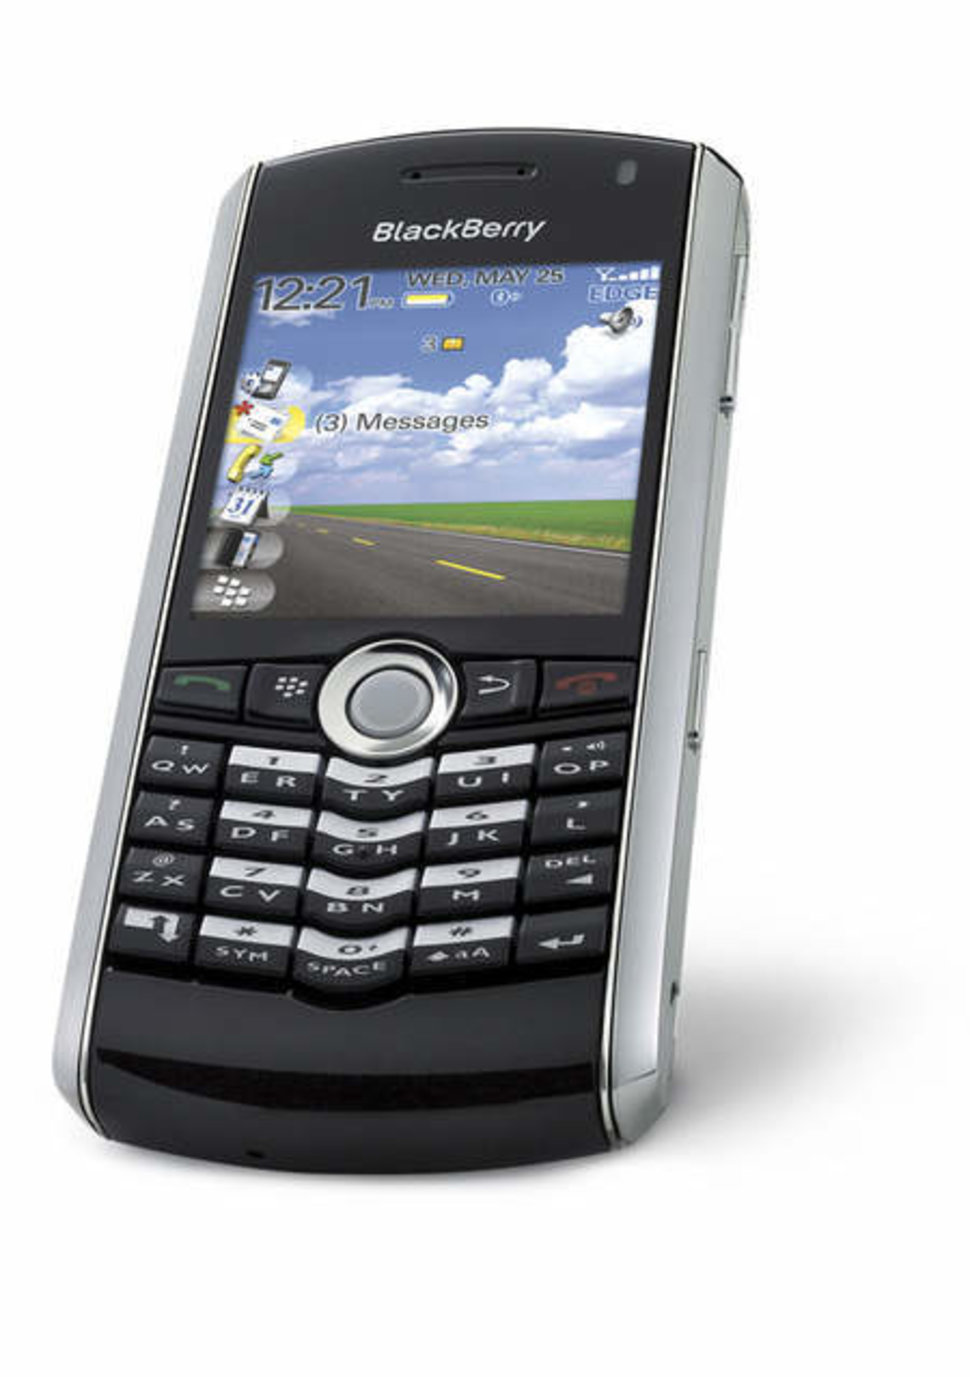 blackberry pearl 8100 smartphone rh pocket lint com 8100F Sim Card BlackBerry Pearl 8100F Sim Card BlackBerry Pearl